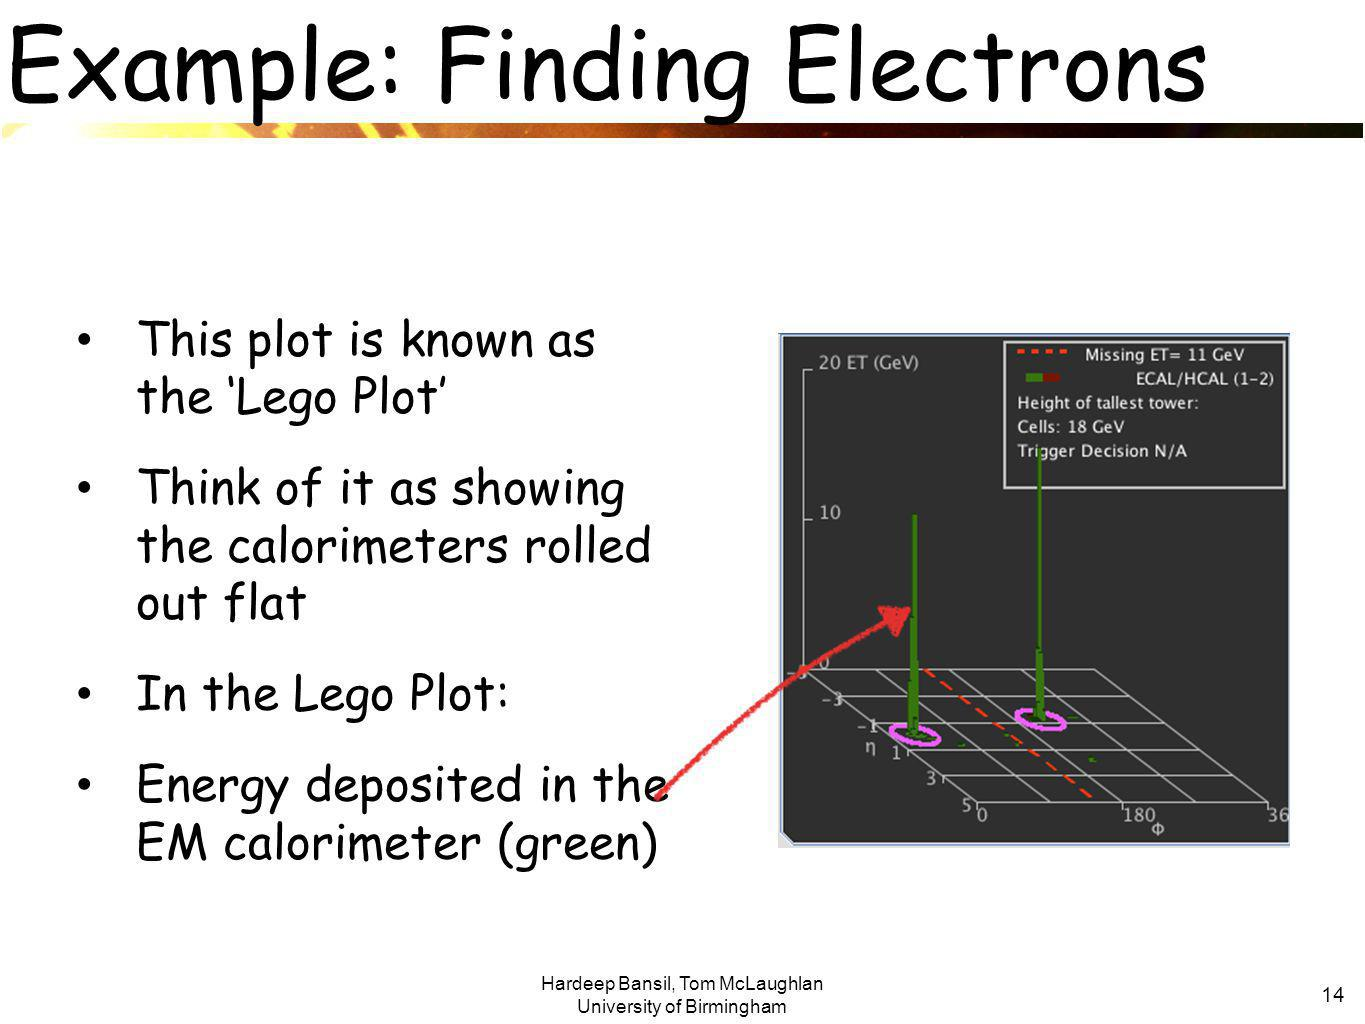 Hardeep Bansil, Tom McLaughlan University of Birmingham 14 Example: Finding Electrons This plot is known as the 'Lego Plot' Think of it as showing the calorimeters rolled out flat In the Lego Plot: Energy deposited in the EM calorimeter (green)